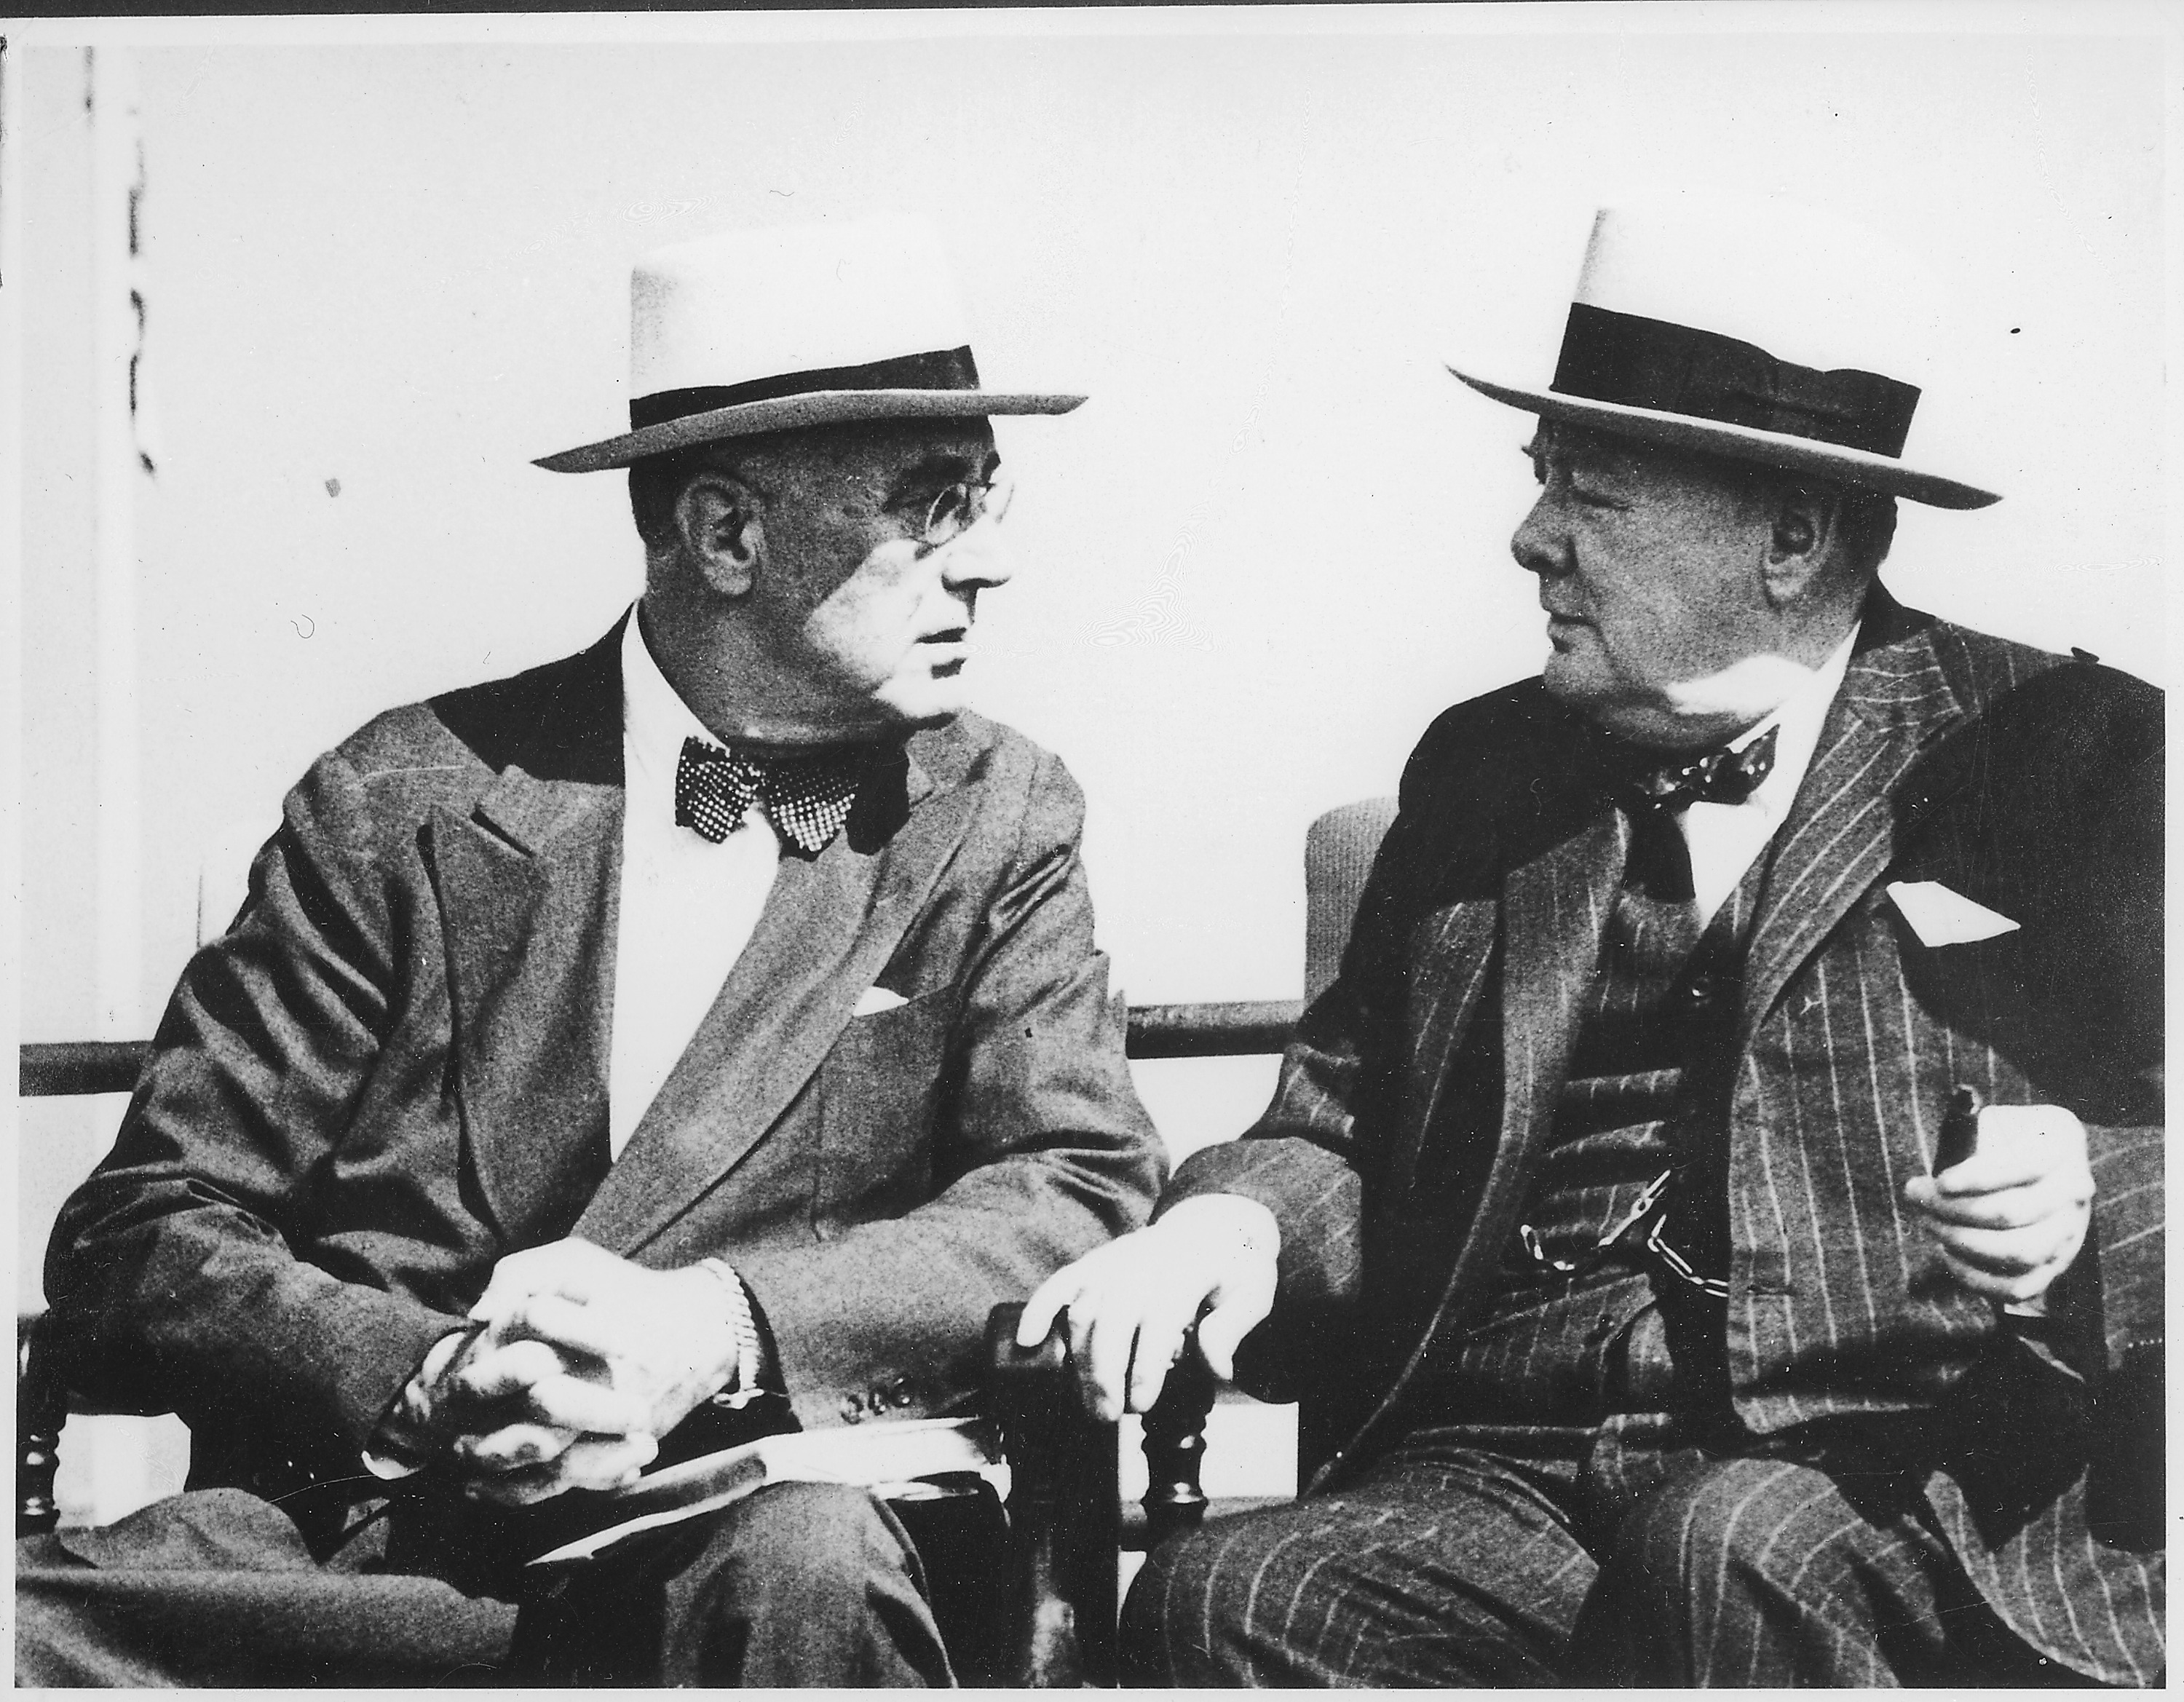 https://i0.wp.com/upload.wikimedia.org/wikipedia/commons/6/6b/Franklin_D._Roosevelt_and_Churchill_in_Quebec,_Canada_-_NARA_-_195419.jpg